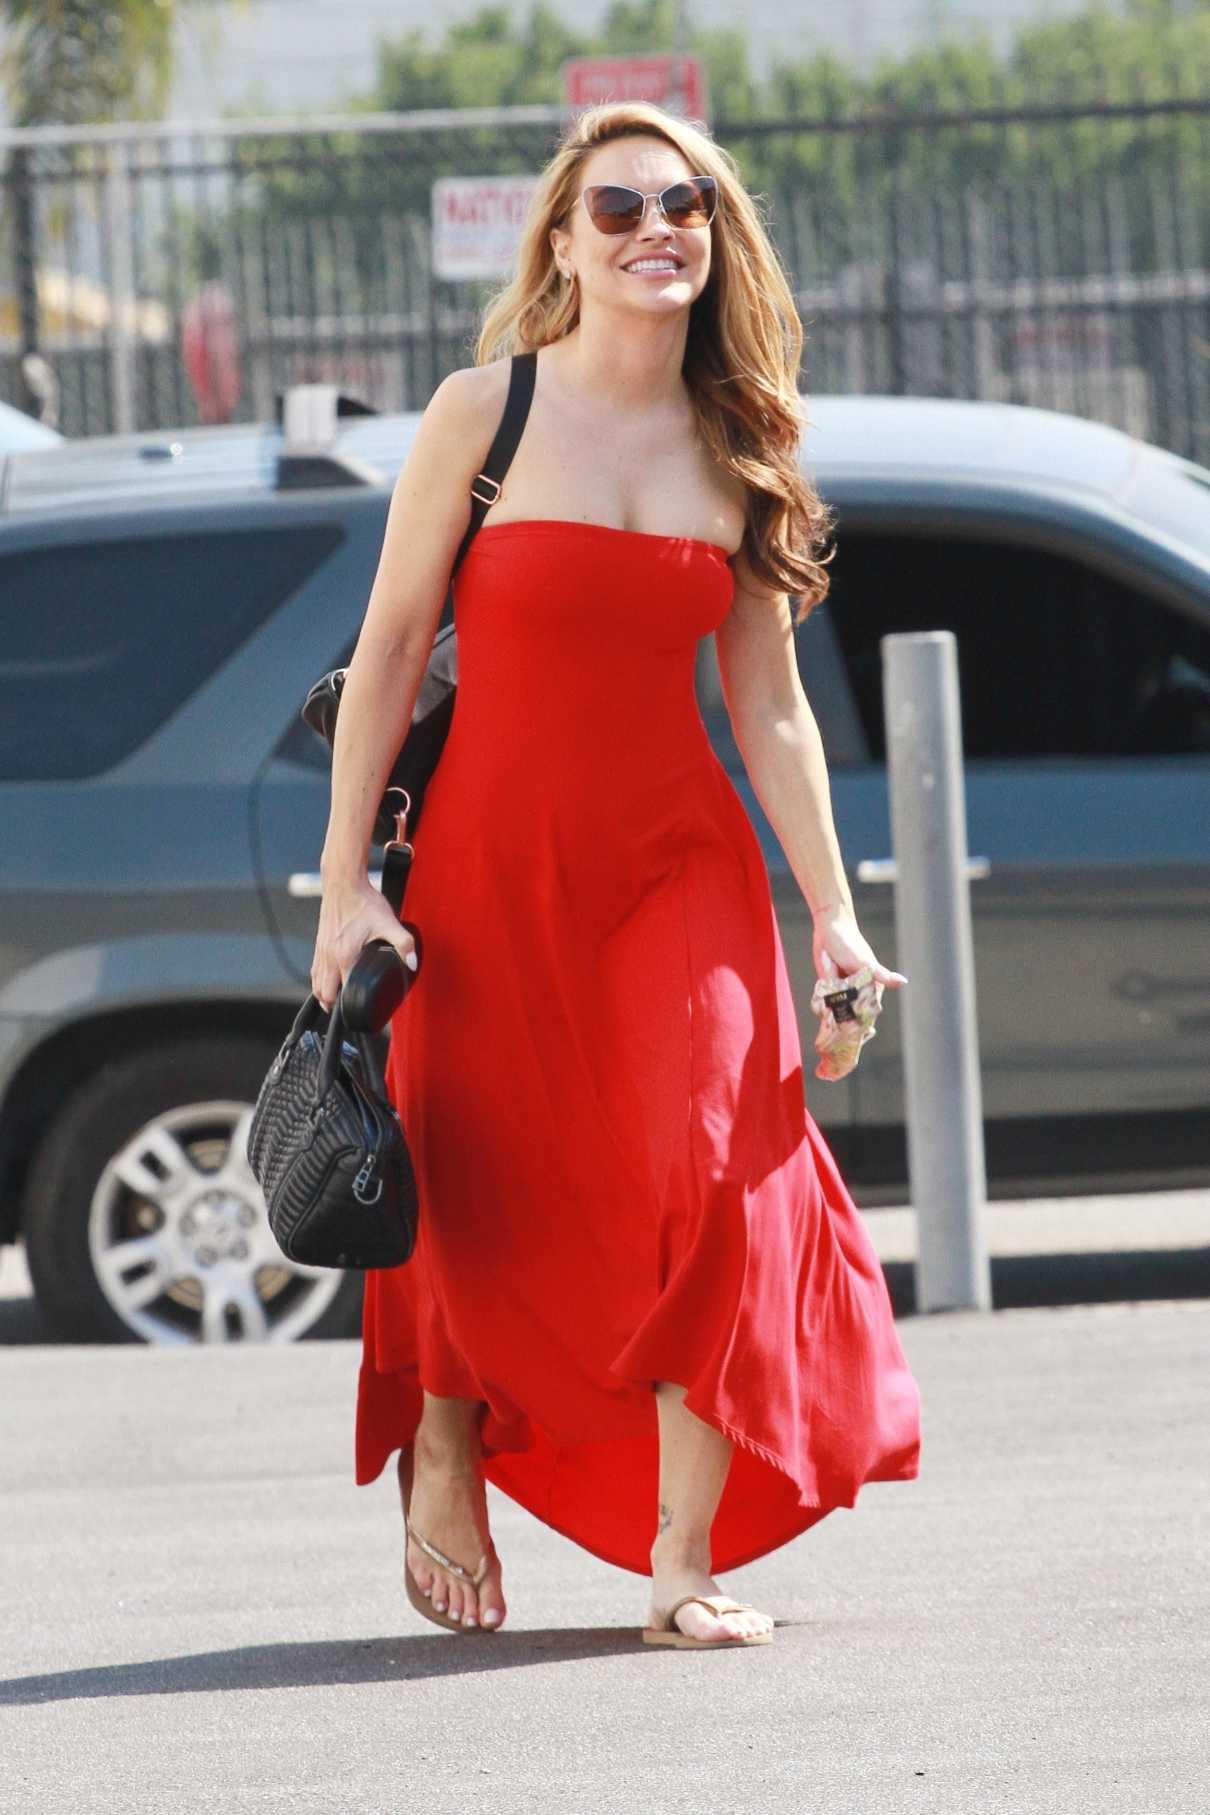 Chrishell Stause in a Red Dress